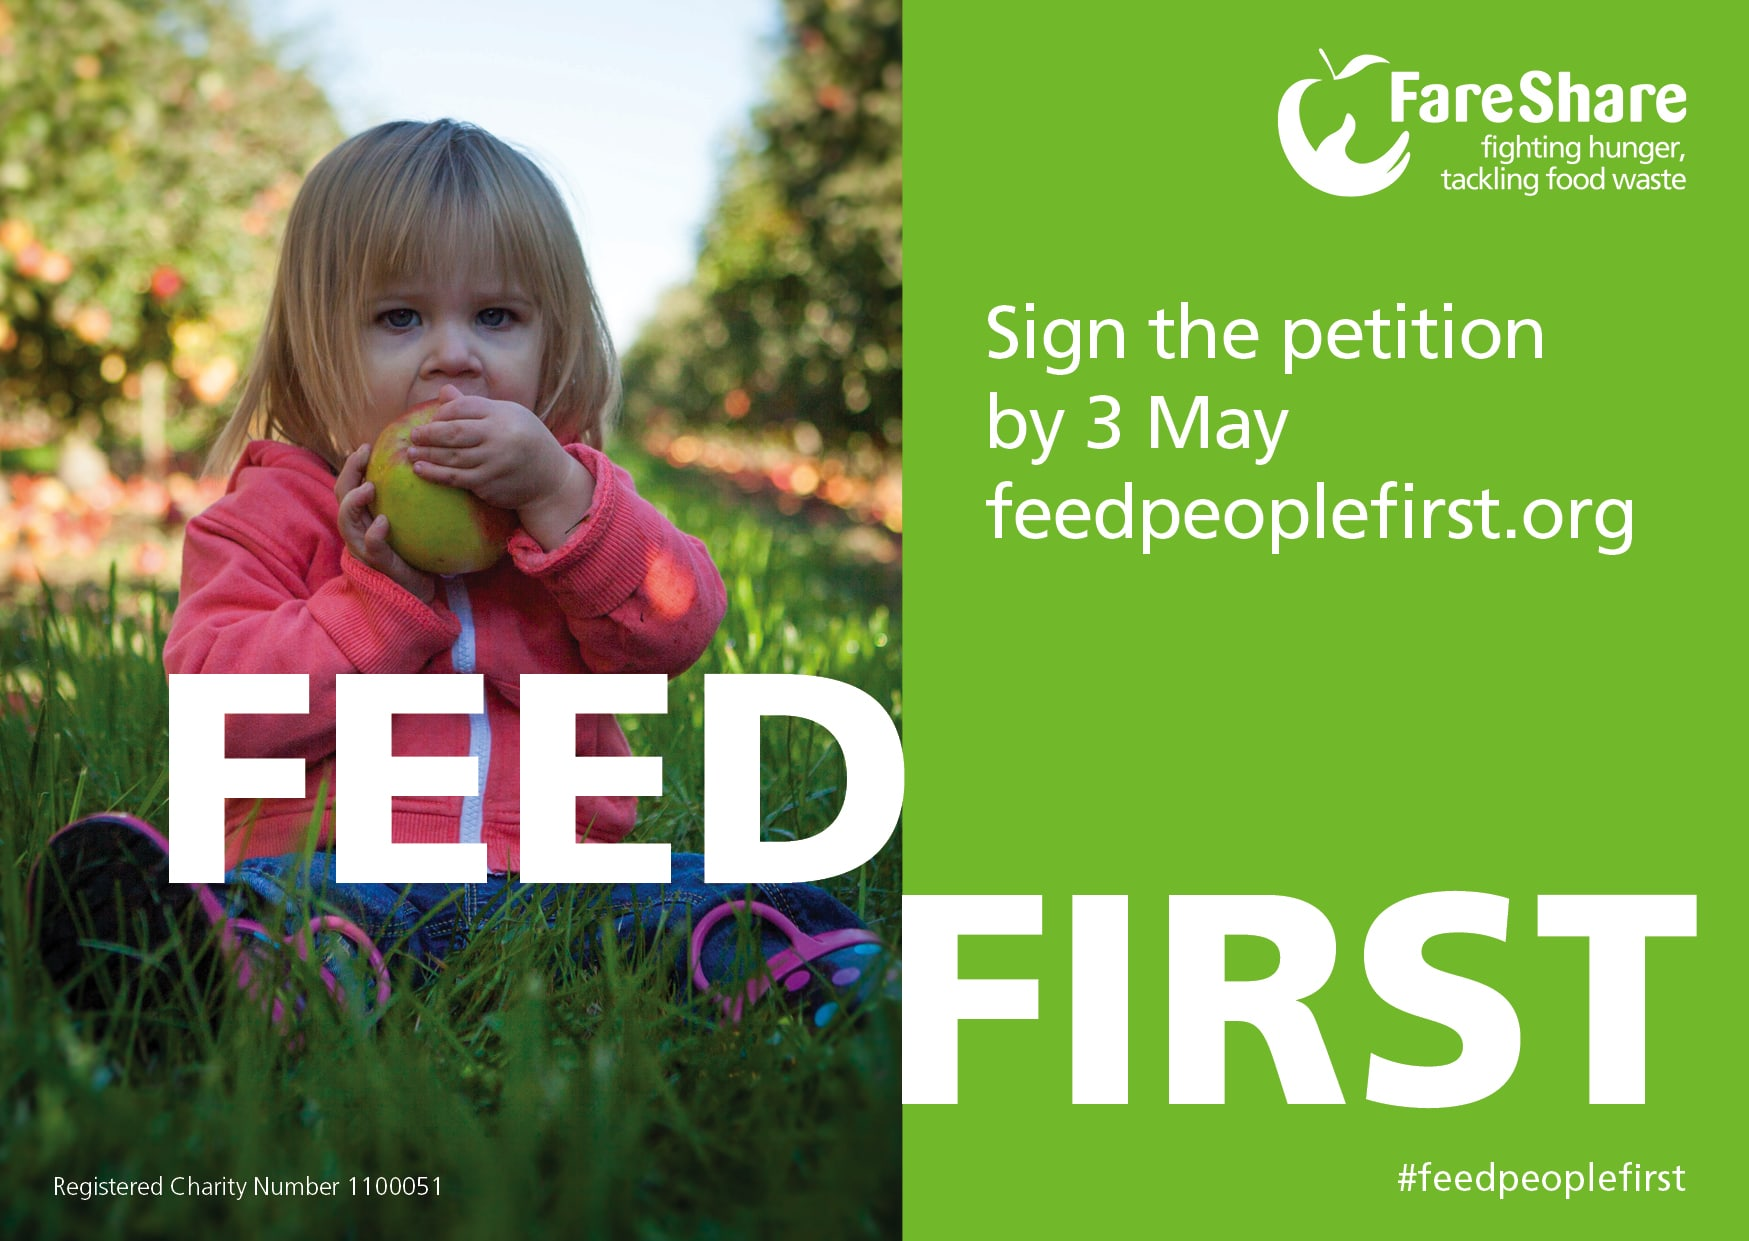 #feedpeoplefirst campaign poster